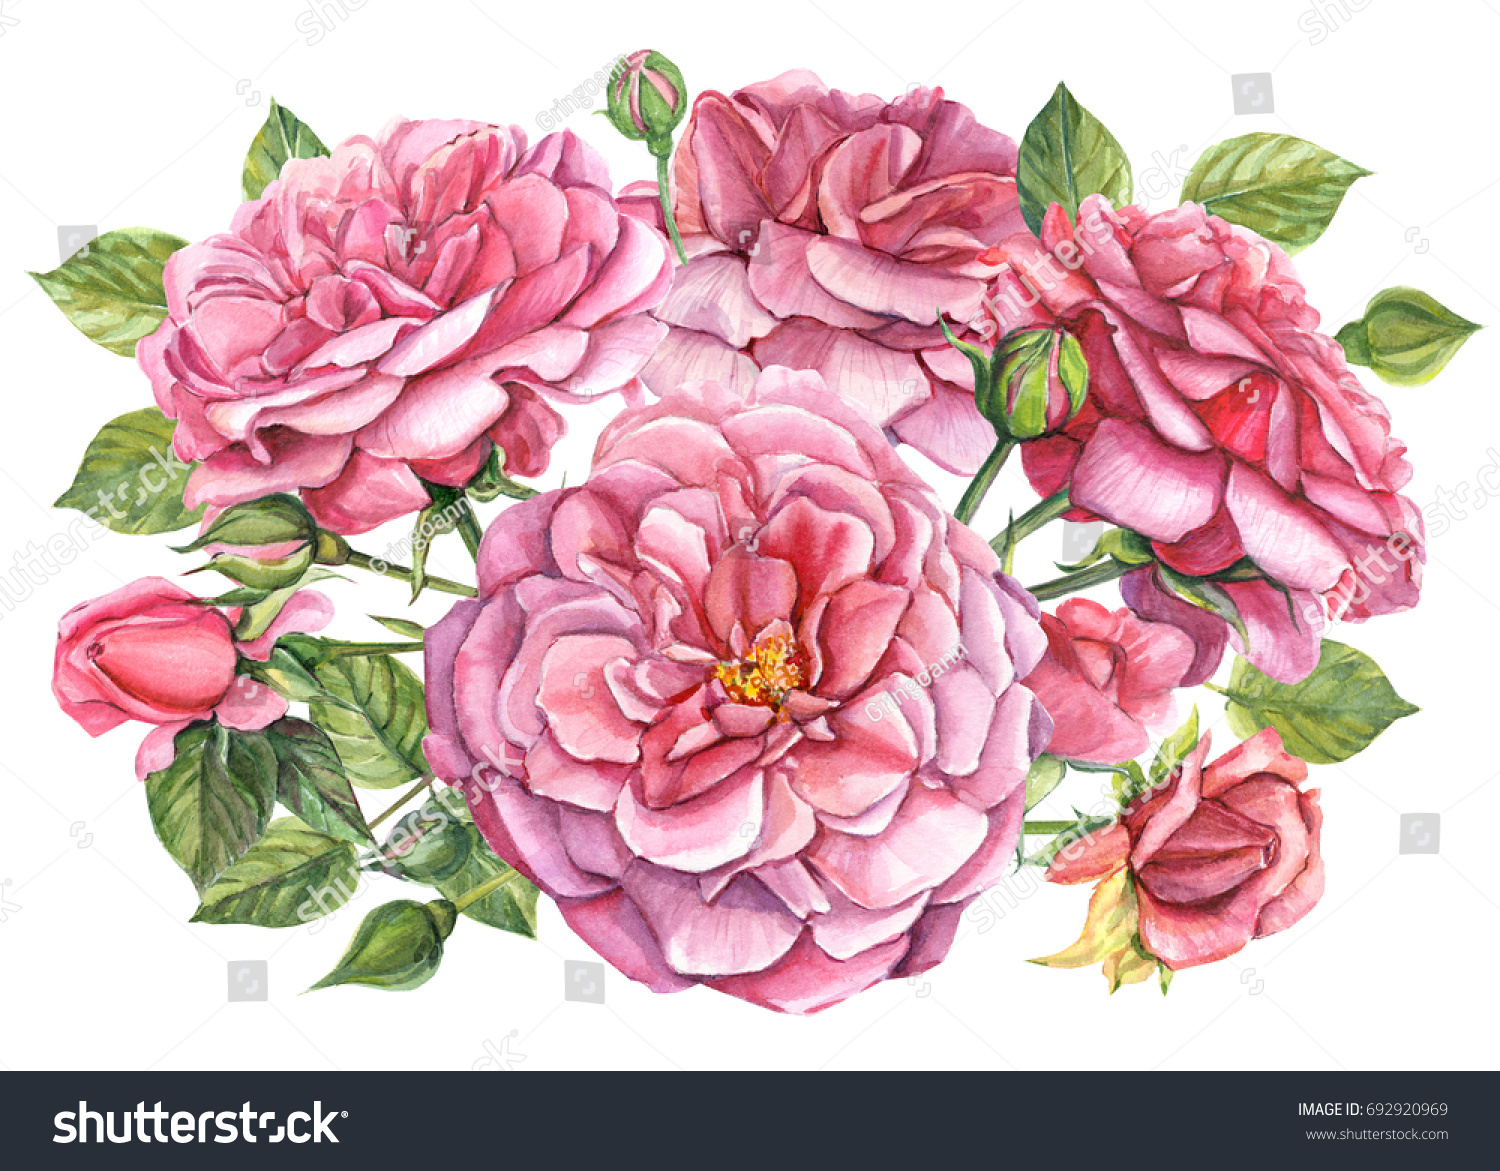 Beautiful Big Bouquet Pink Flowers Roses Stock Illustration